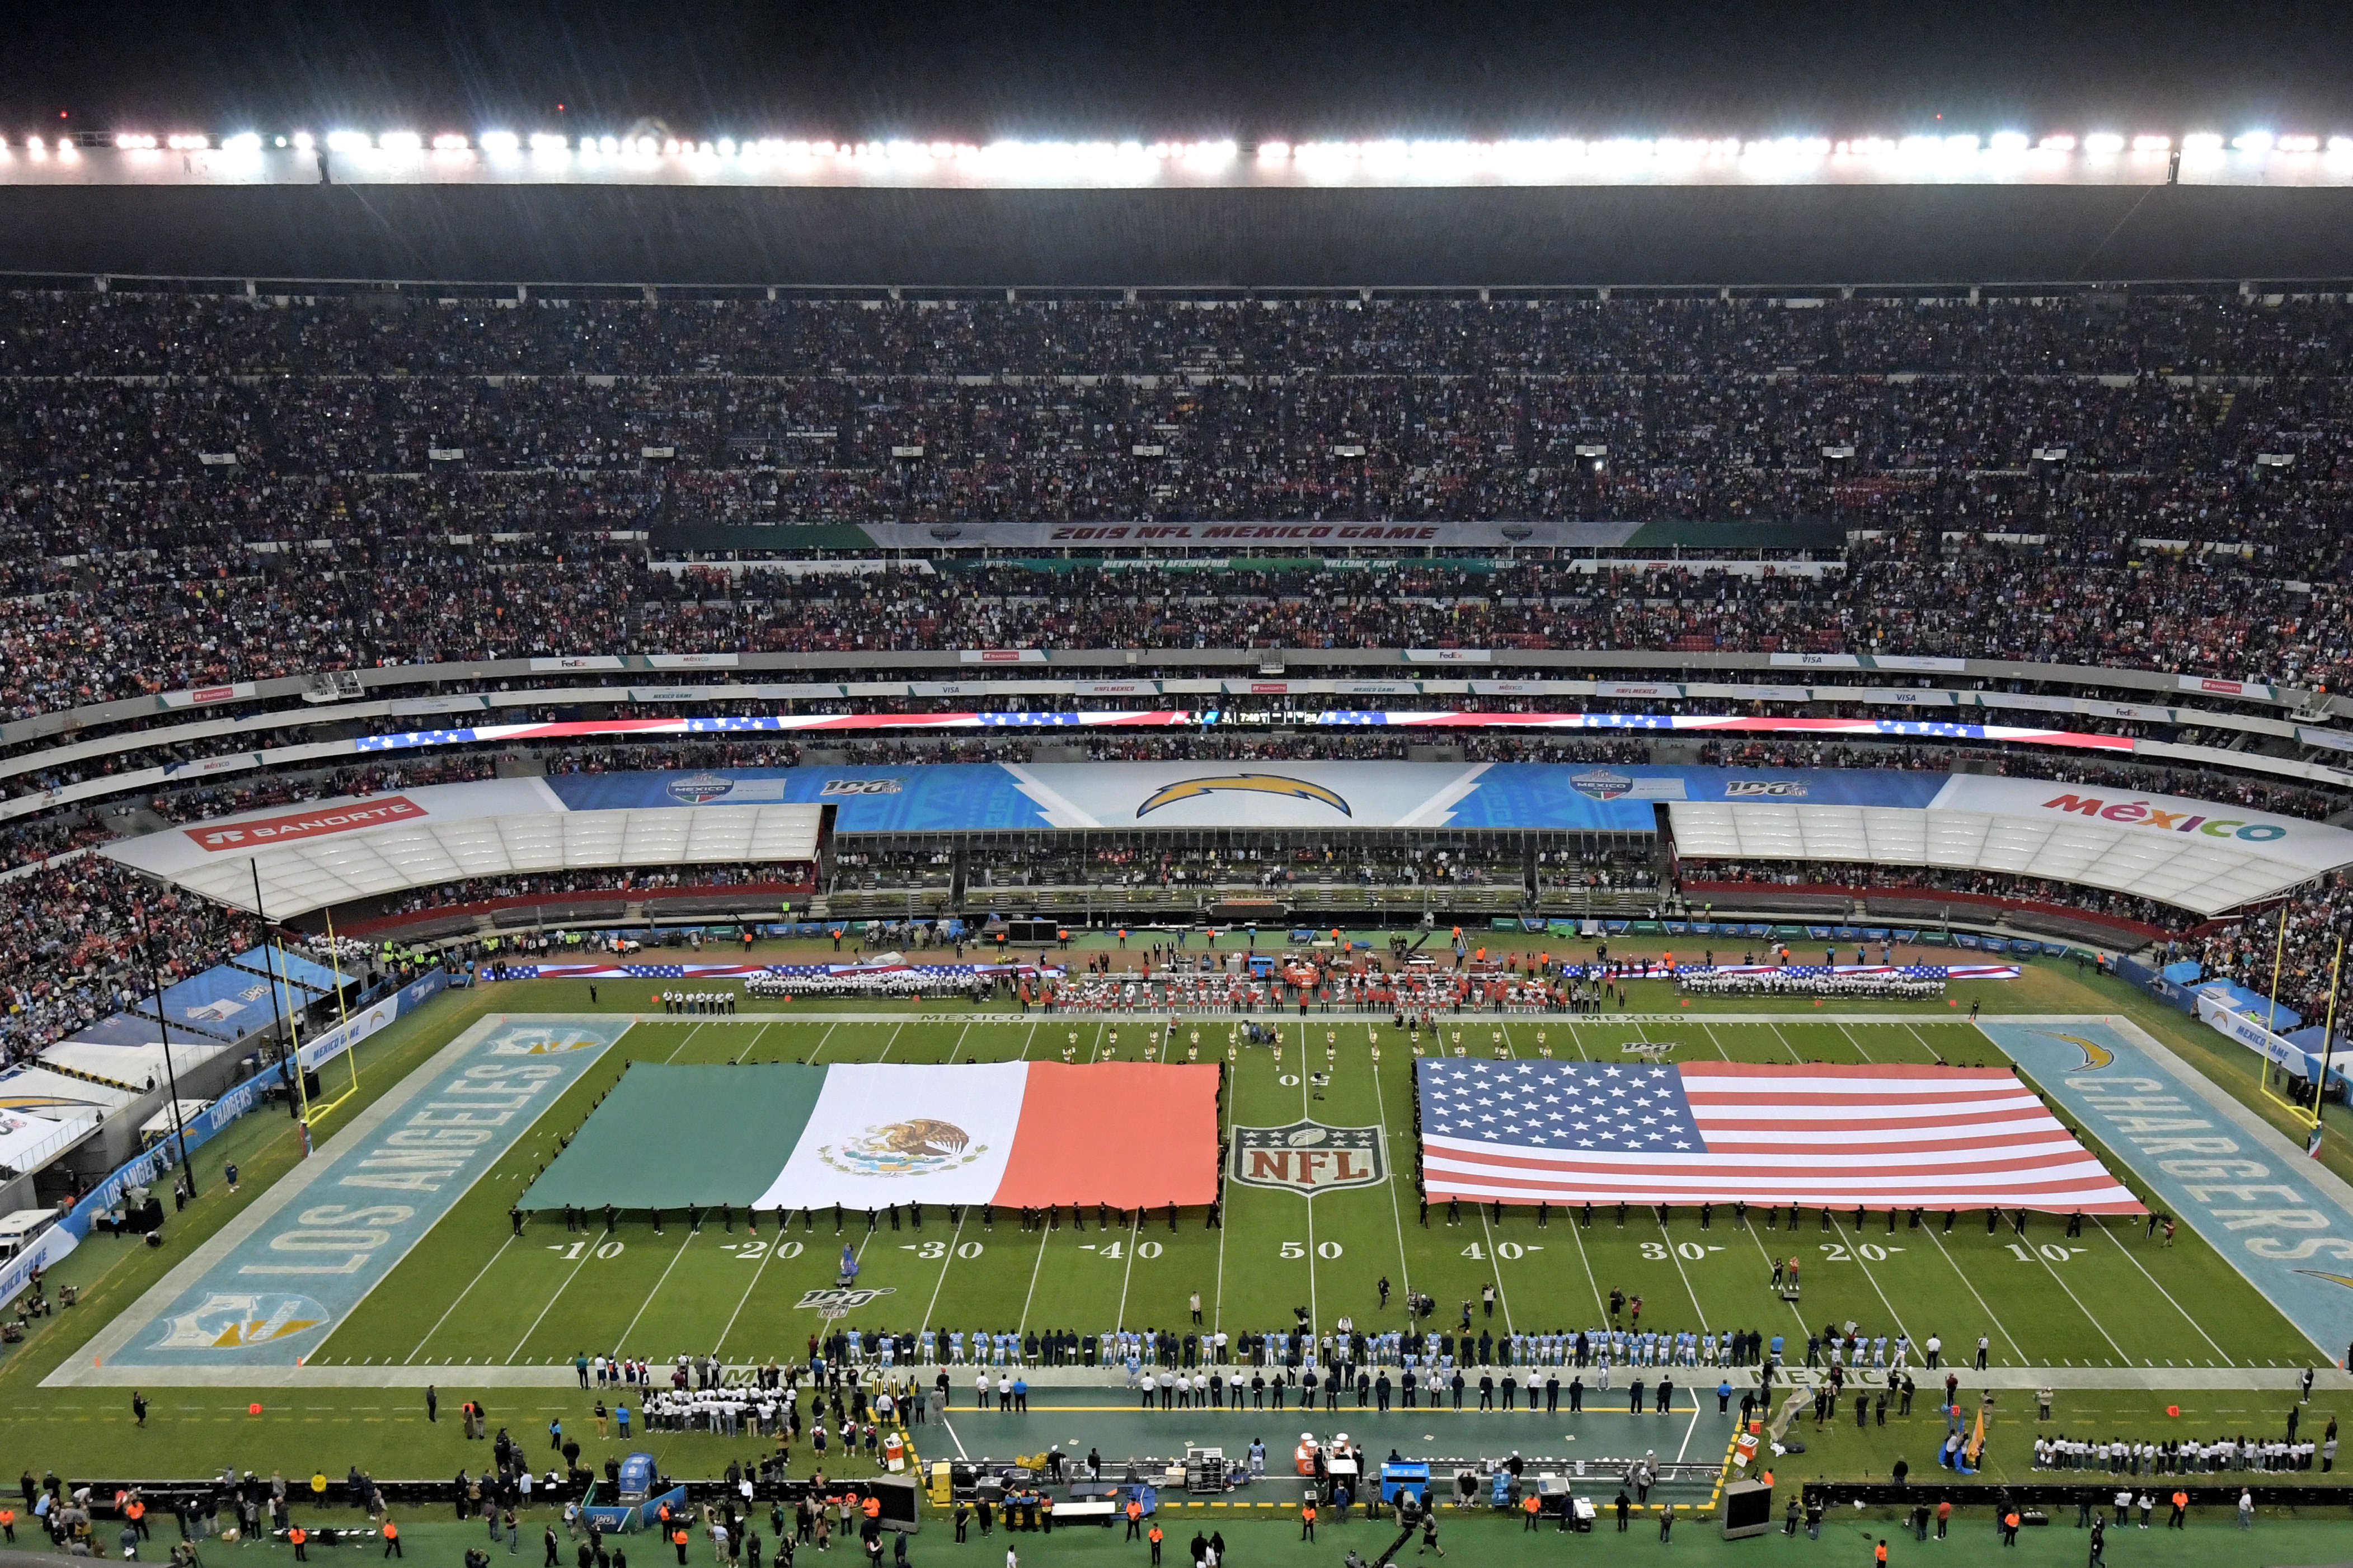 Off-Shoring, Broadcast Regionalization is Hurting U.S. Sports Leagues